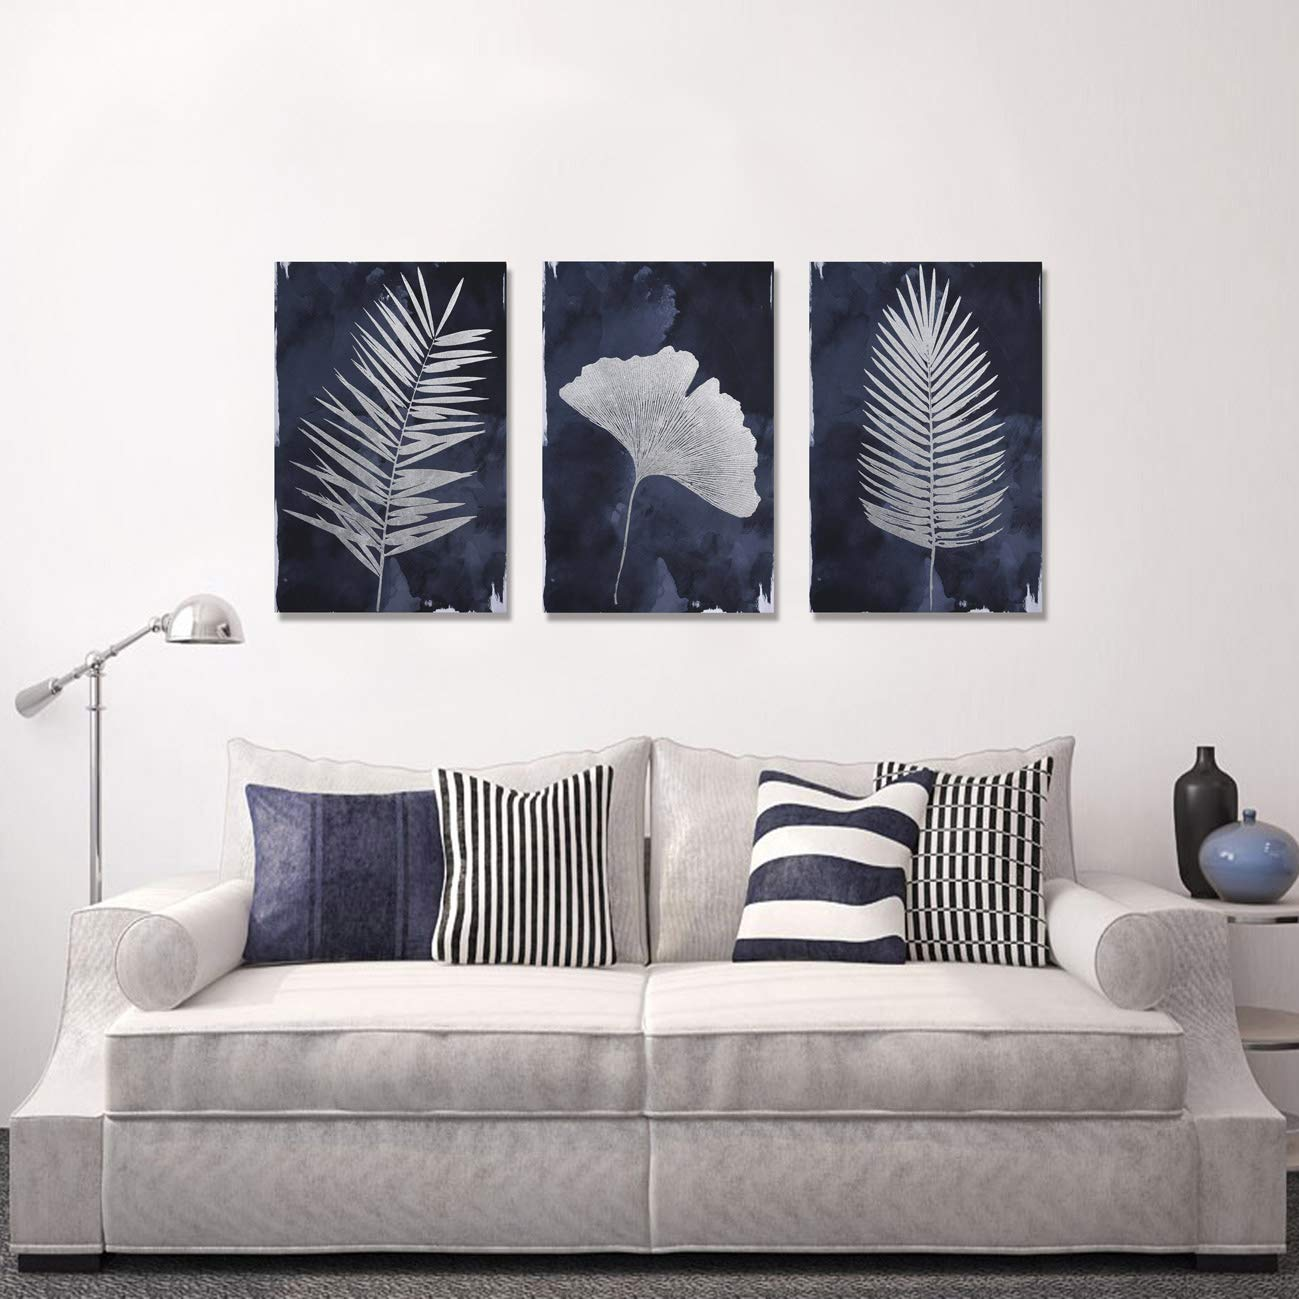 Framed Large Canvas Navy Blue Wall Art for Home, 3 Panels Hand Painted  Pictures, Modern Palm Ginkgo Leaves Wall Decor for Living Room Bedroom  Bathroom ...